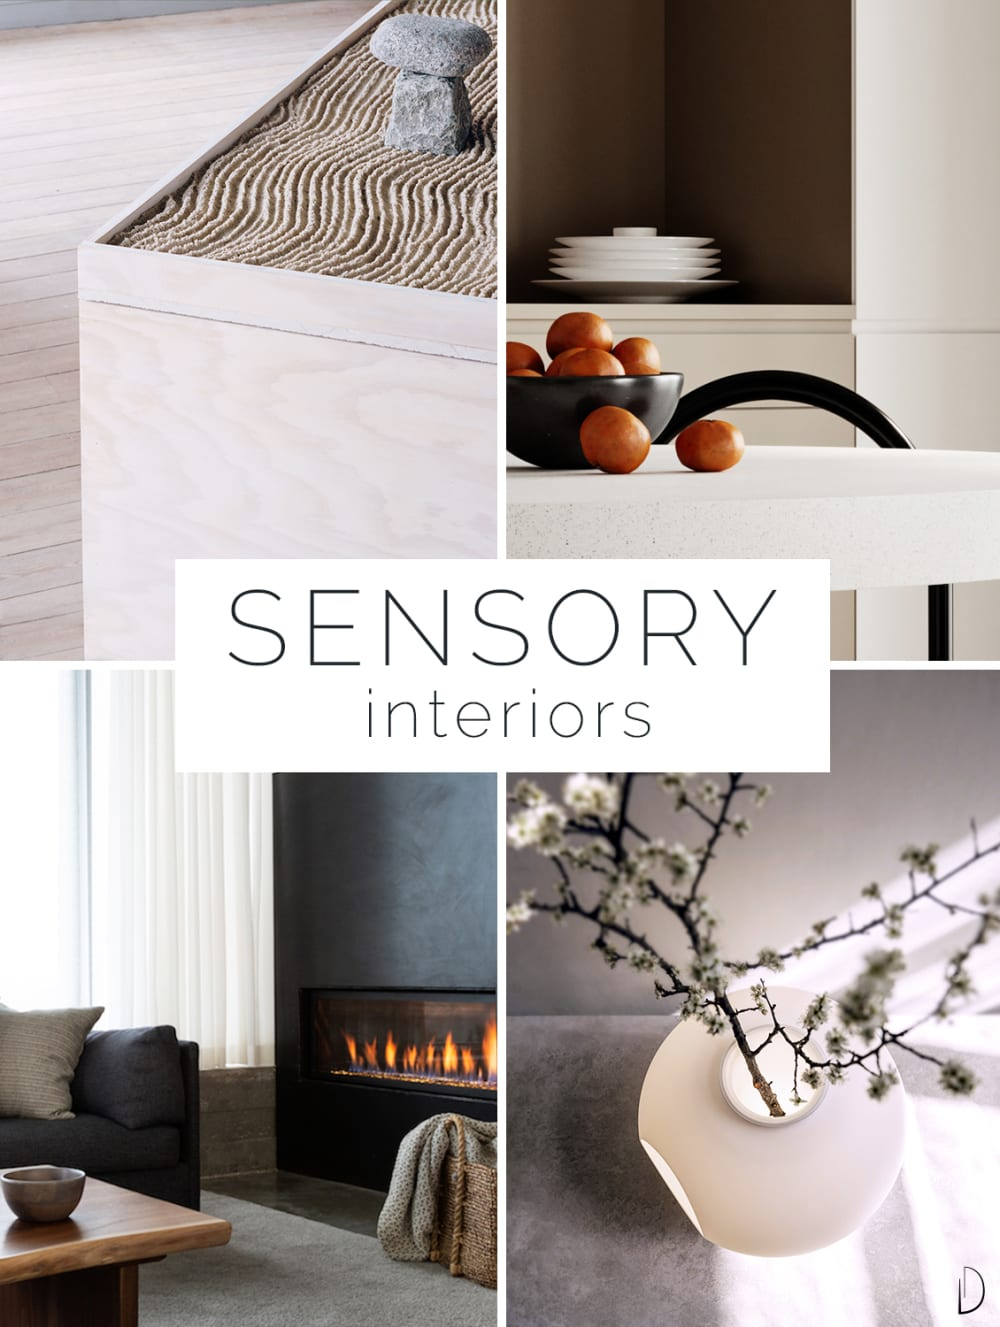 "Moodboard depicting the 4 non-visual senses in biophilic design. 1. A zen garden with sand 2. Oranges arranged on a table 3. A crackling fireplace 4. Fragrant flowers in a vase.<span class=""sr-only""> (opened in a new window/tab)</span>"